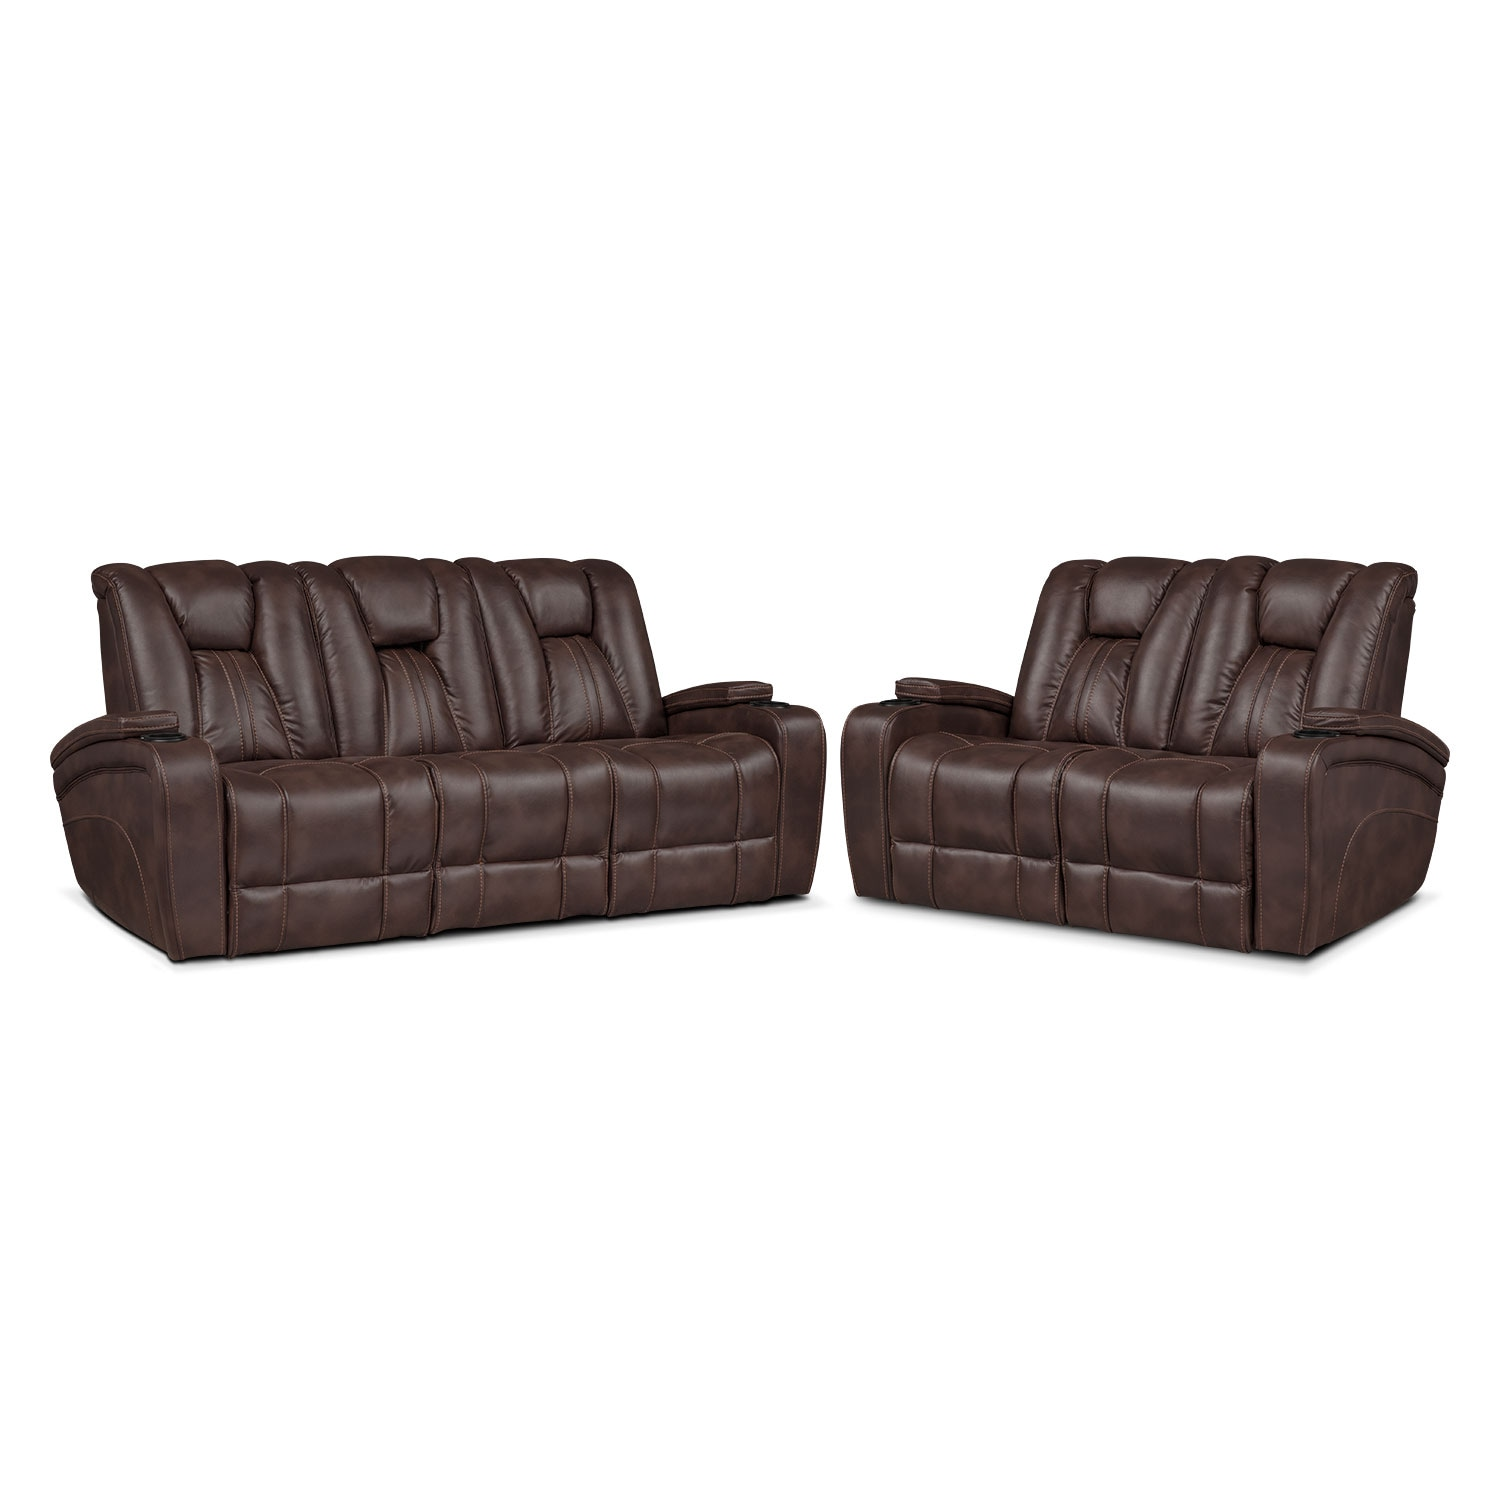 Pulsar Dual Power Reclining Sofa And Dual Power Reclining: power reclining sofas and loveseats